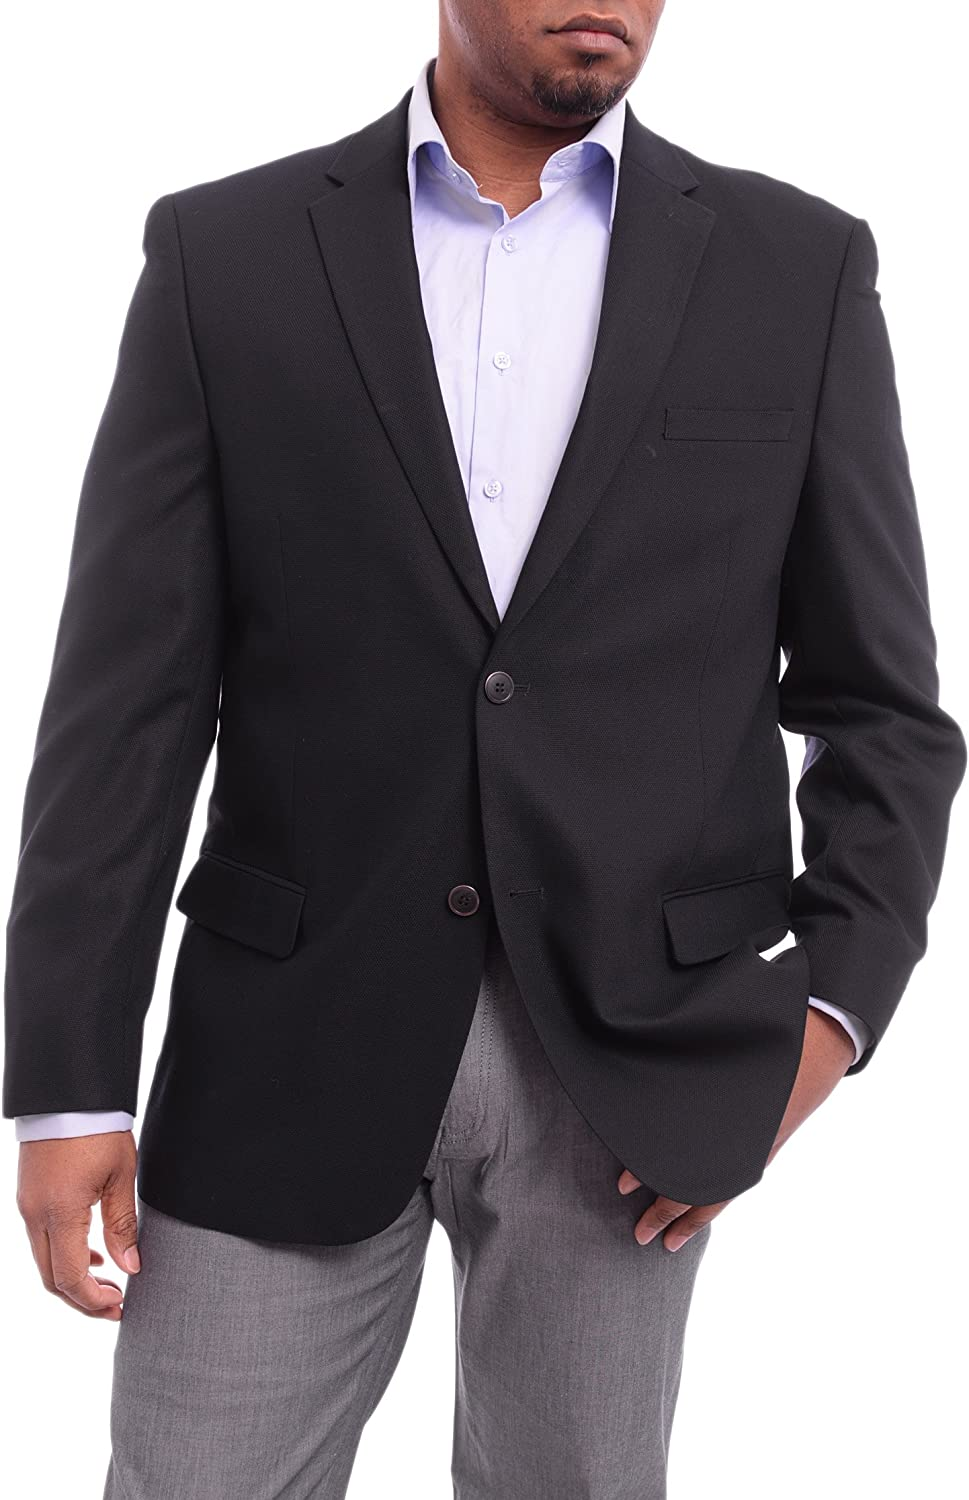 Caravelli Classic Fit Navy Blue Hopsack Weave Two Button Stretch Blazer Sportcoat